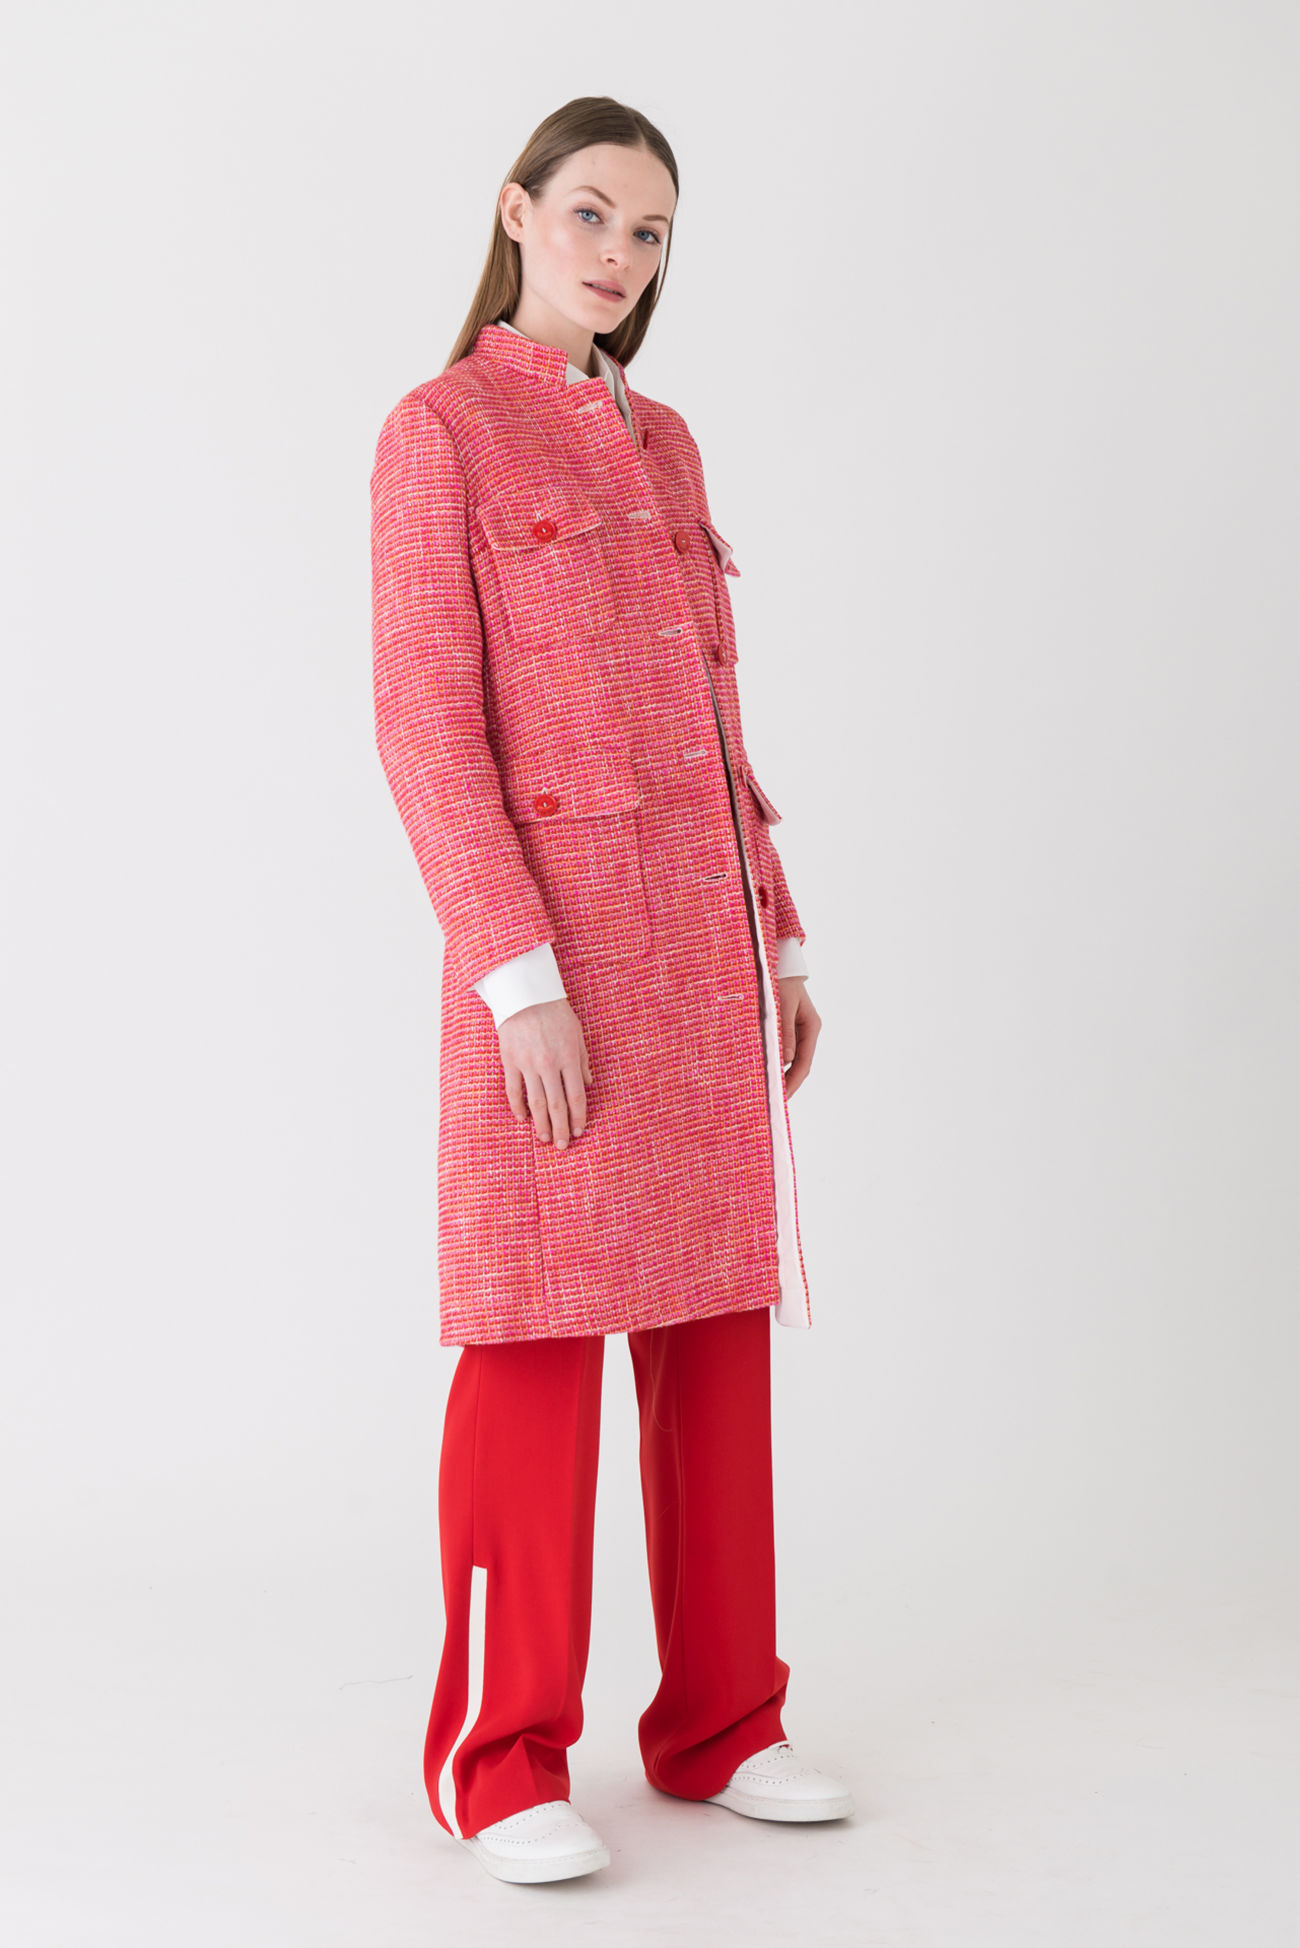 Statement coat made of lightweight summer tweed